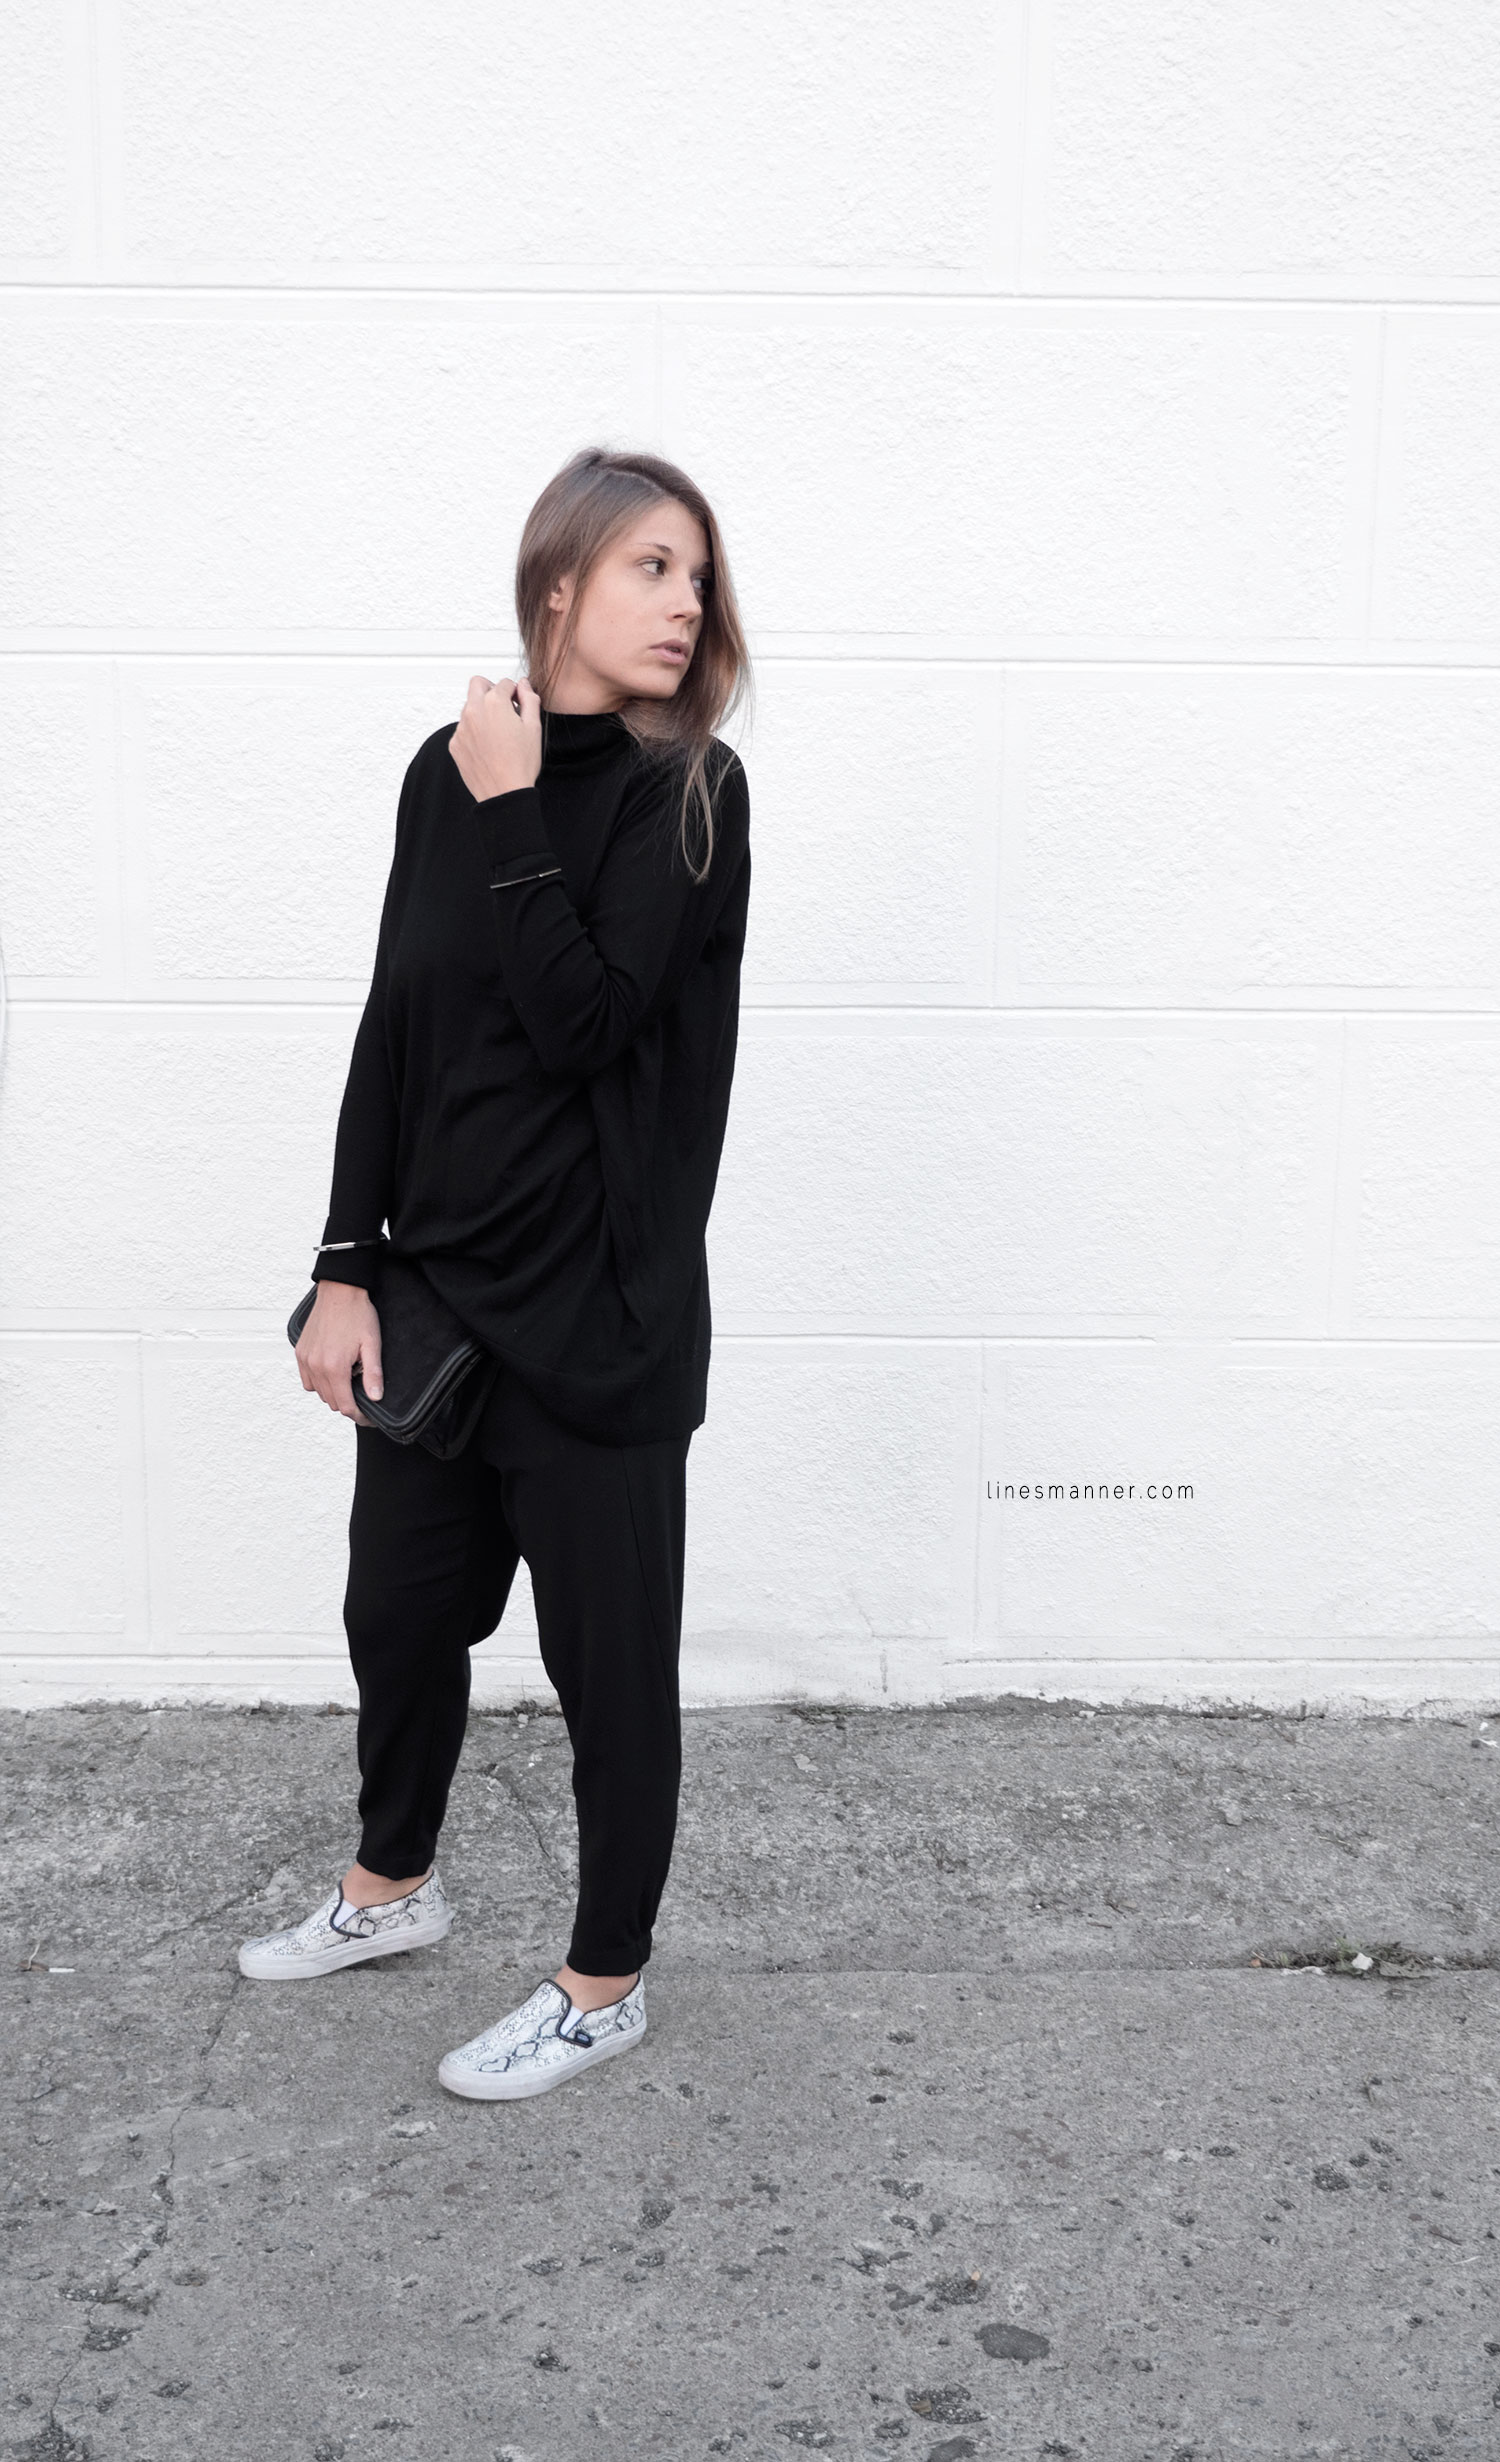 Lines-Manner-Minimalism-Details-Black-All_black_everything-Simplicity-Timeless-Modern-Monochrome-Essential-Basics-Staples_pieces-Outfit-Design-Effortless-8